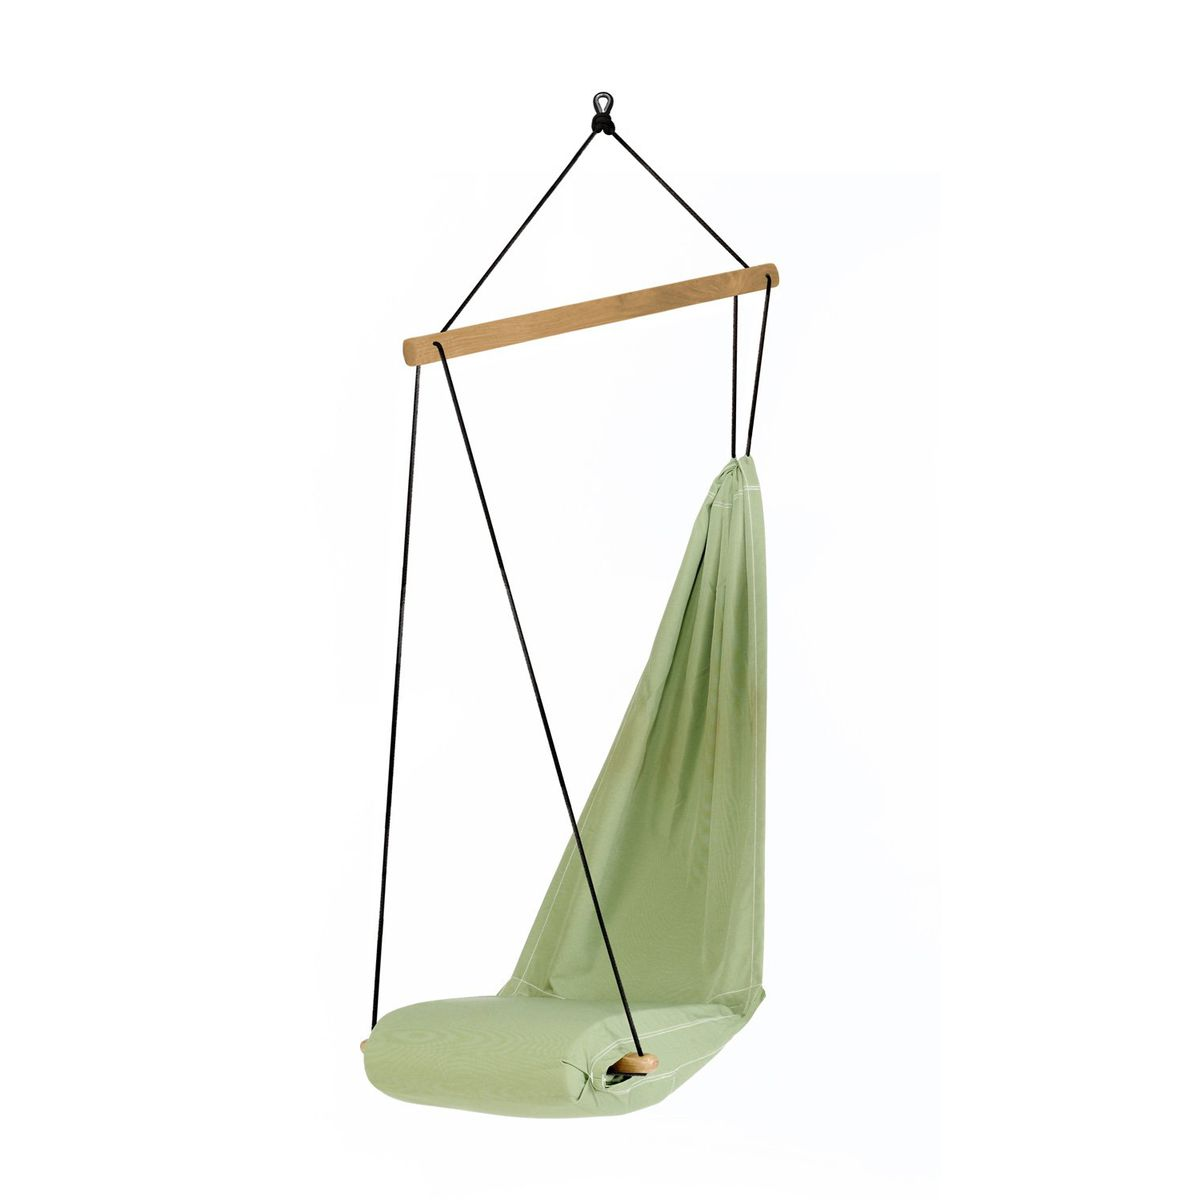 Amazonas Hangover Green Hanging Chair - Ruby's Garden Boutique